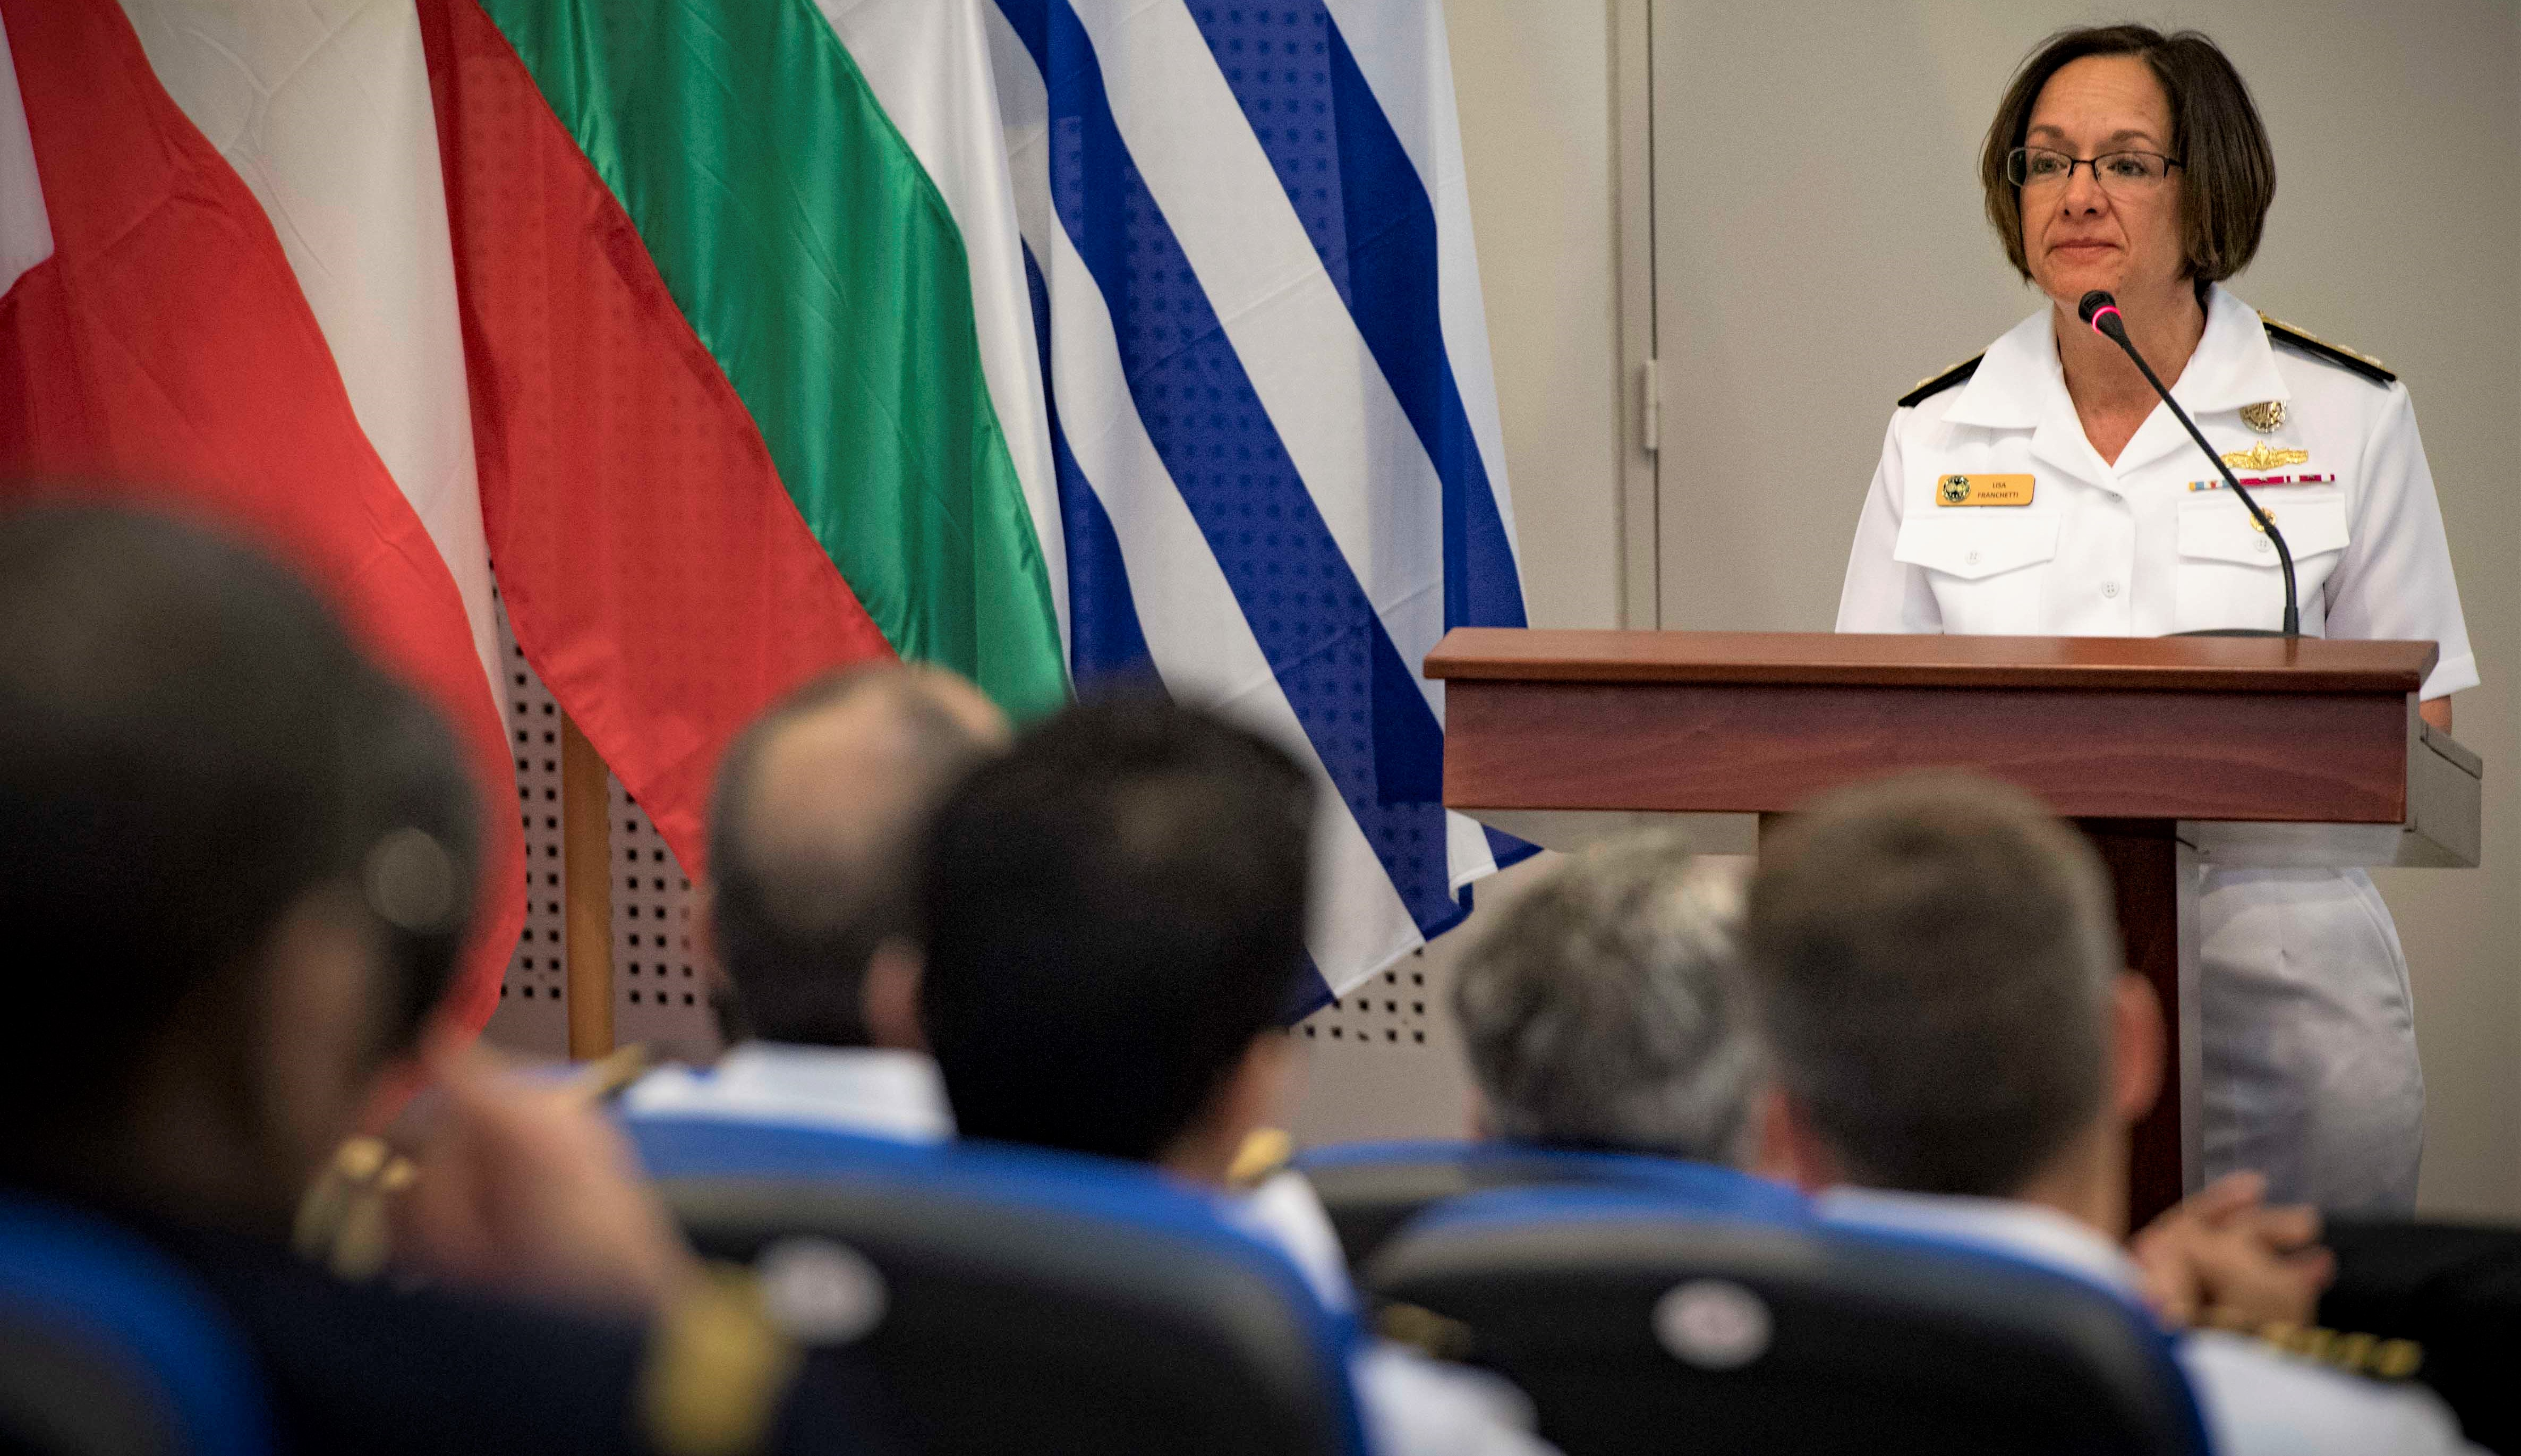 180511-N-UY653-082 MEDITERRANEAN SEA (May 11, 2018) Vice Adm. Lisa Franchetti, commander, U.S. 6th Fleet, delivers remarks during the exercise Phoenix Express 2018 closing ceremony, May 11. Phoenix Express is sponsored by U.S. Africa Command and facilitated by U.S. Naval Forces Europe-Africa/U.S. 6th Fleet, and is designed to improve regional cooperation, increase maritime domain awareness information sharing practices, and operational capabilities to enhance efforts to achieve safety and security in the Mediterranean Sea. (U.S. Navy photo by Mass Communication Specialist 2nd Class Ryan U. Kledzik/Released)